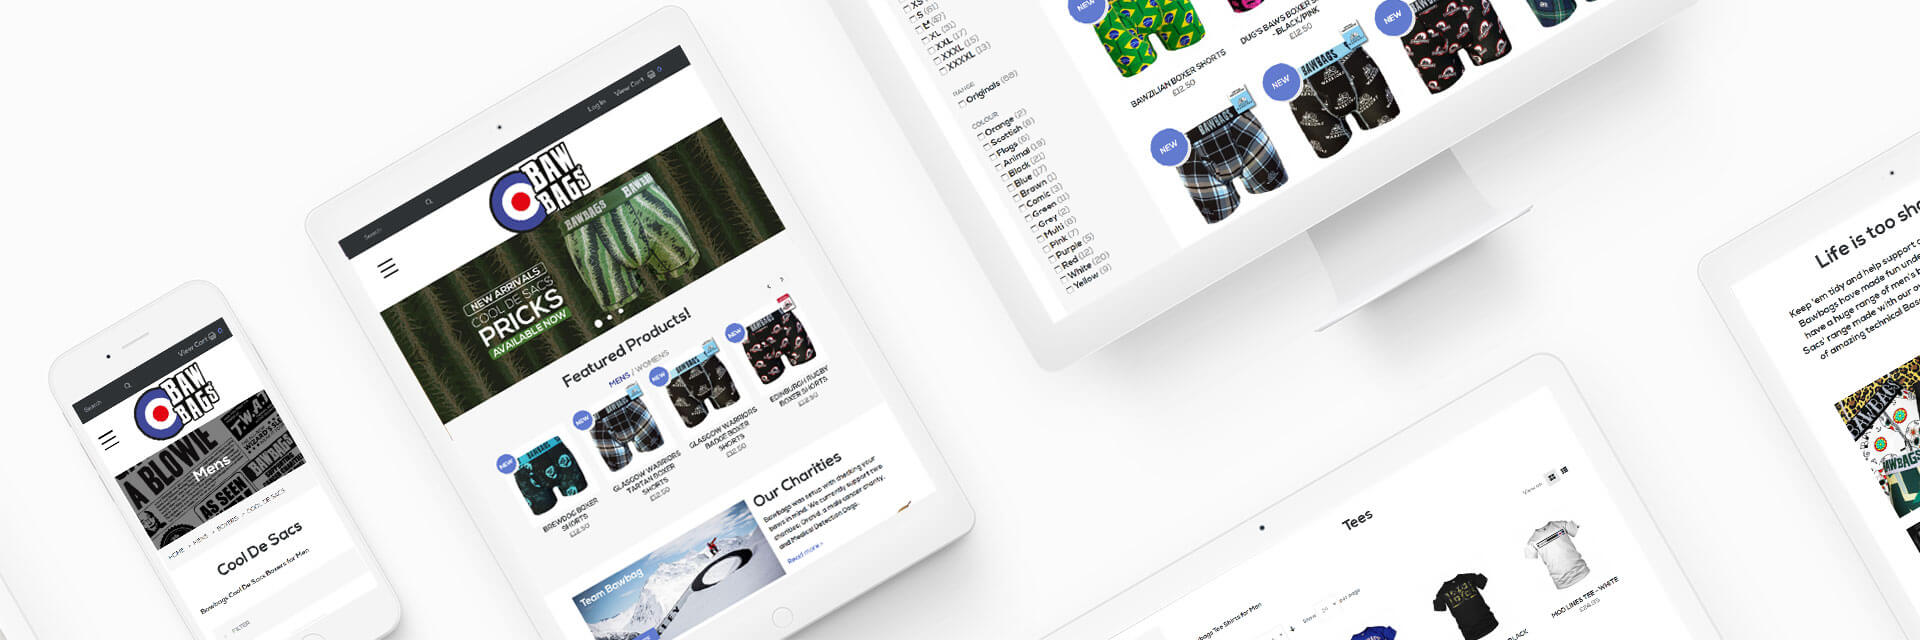 Bawbags Magento Ecommerce Project